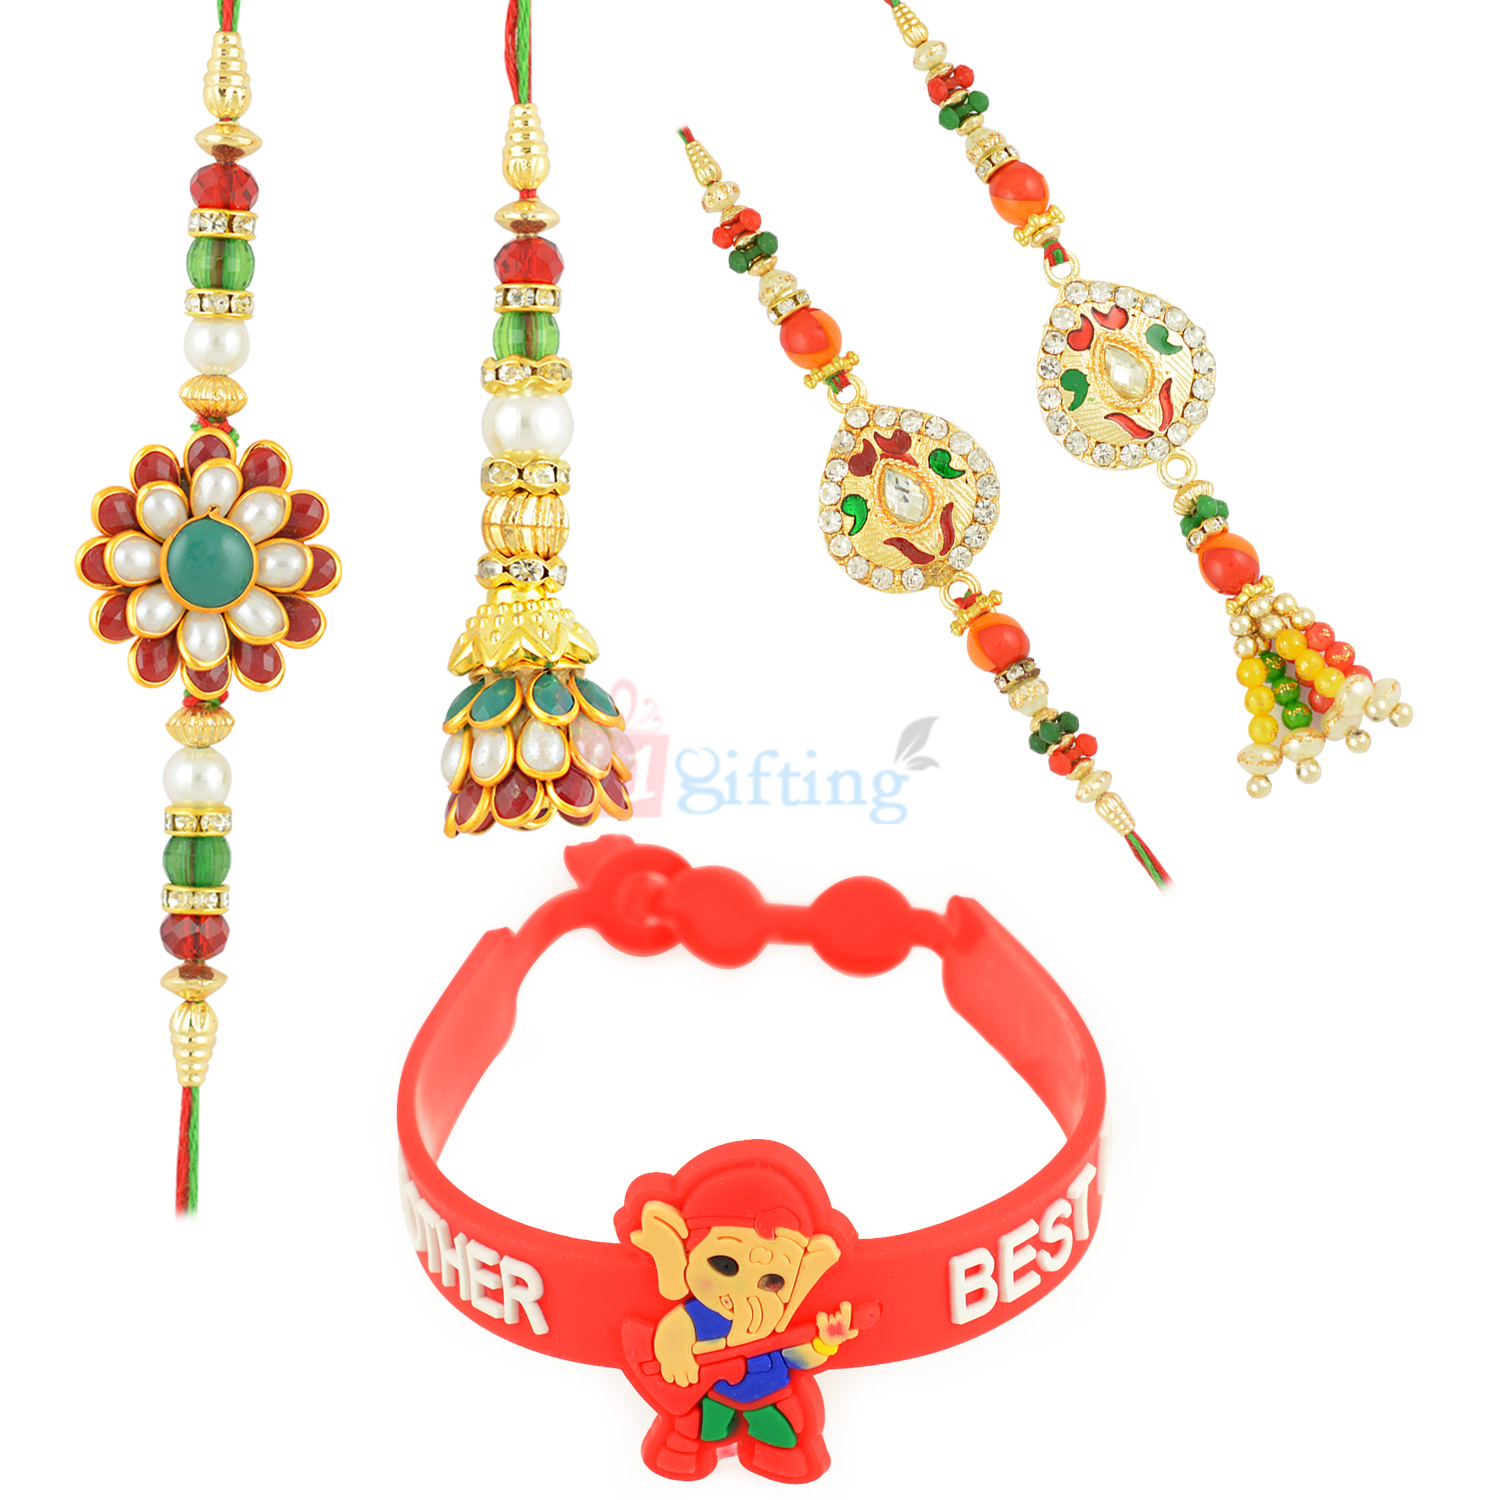 Sparkling 5 Rakhi Set with Lord Ganesha and Pair Rakhi